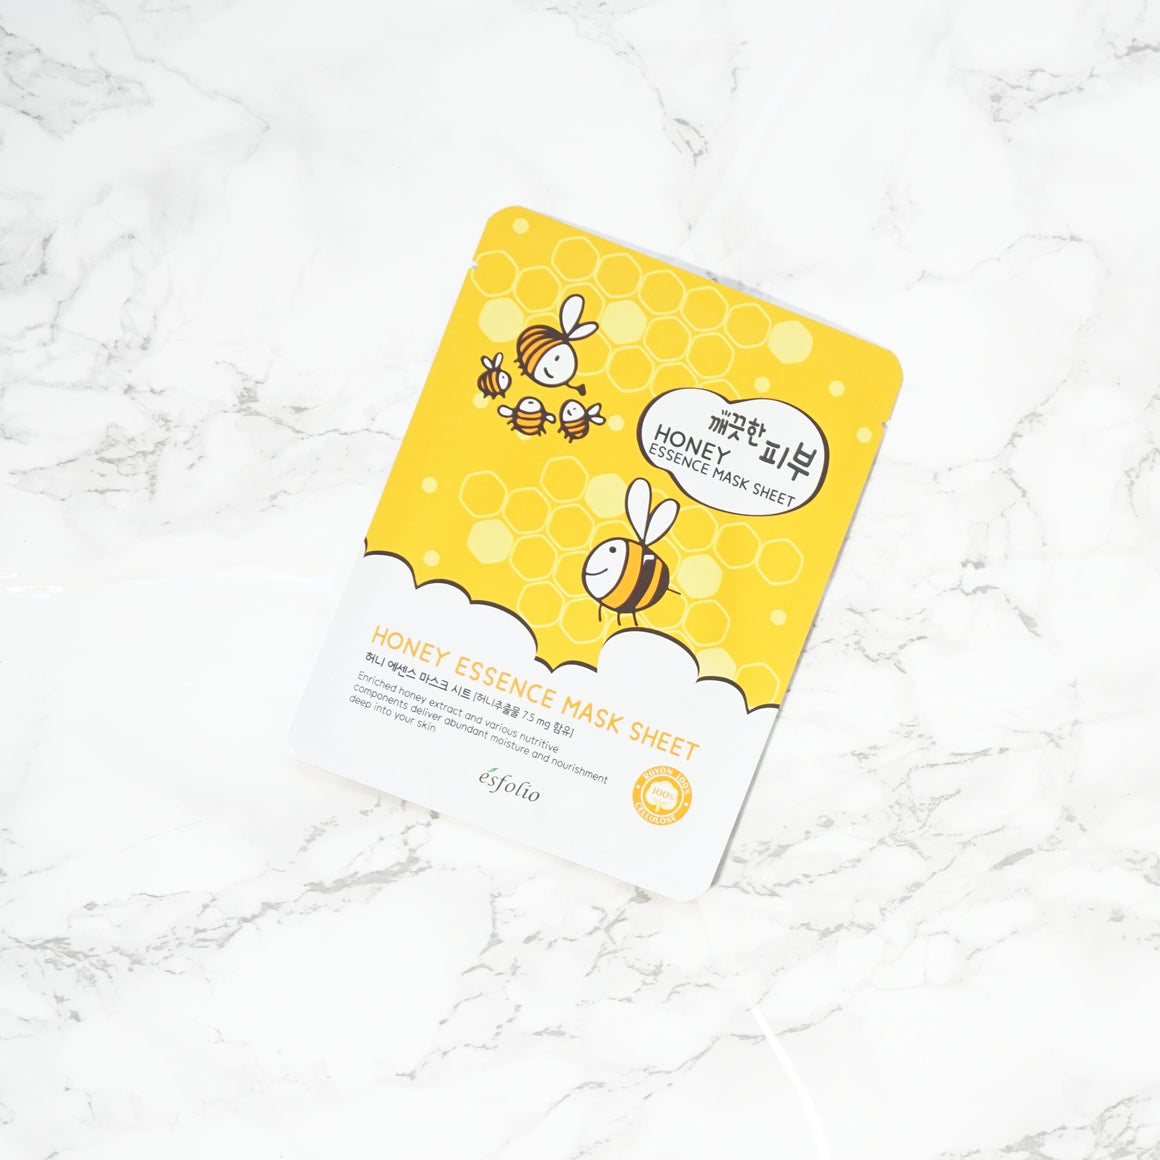 Esfolio PURE SKIN Essence Sheet Mask - Honey